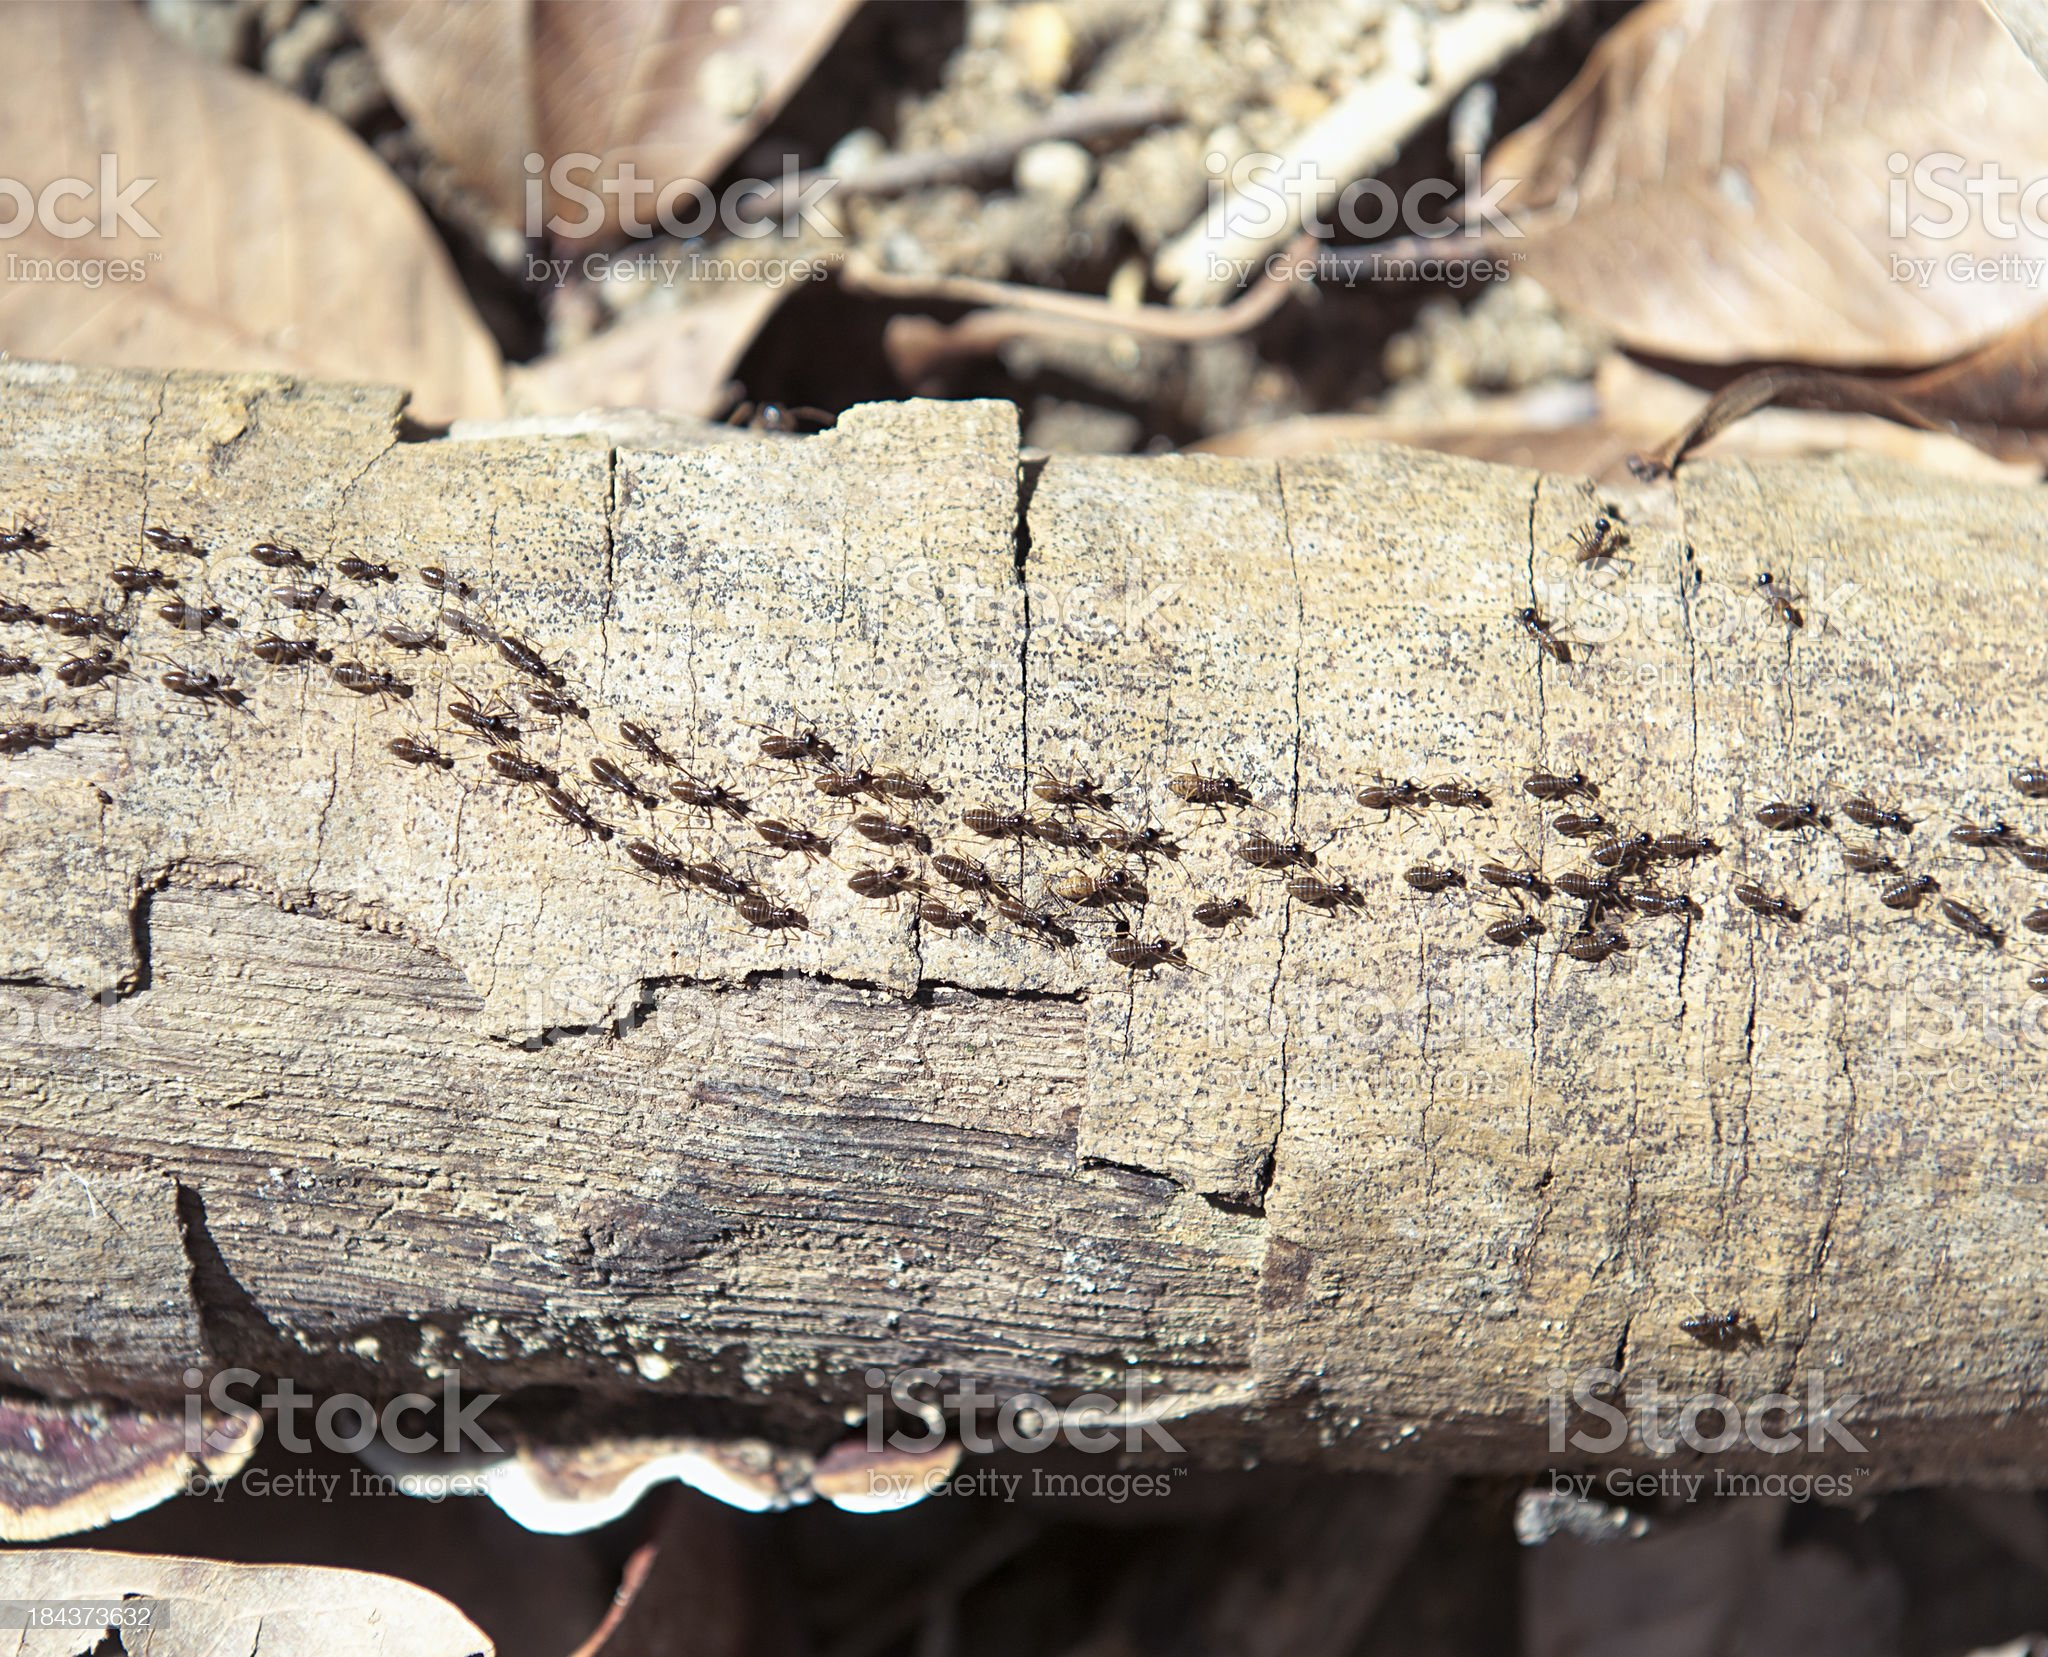 Termite Colony On the Move royalty-free stock photo